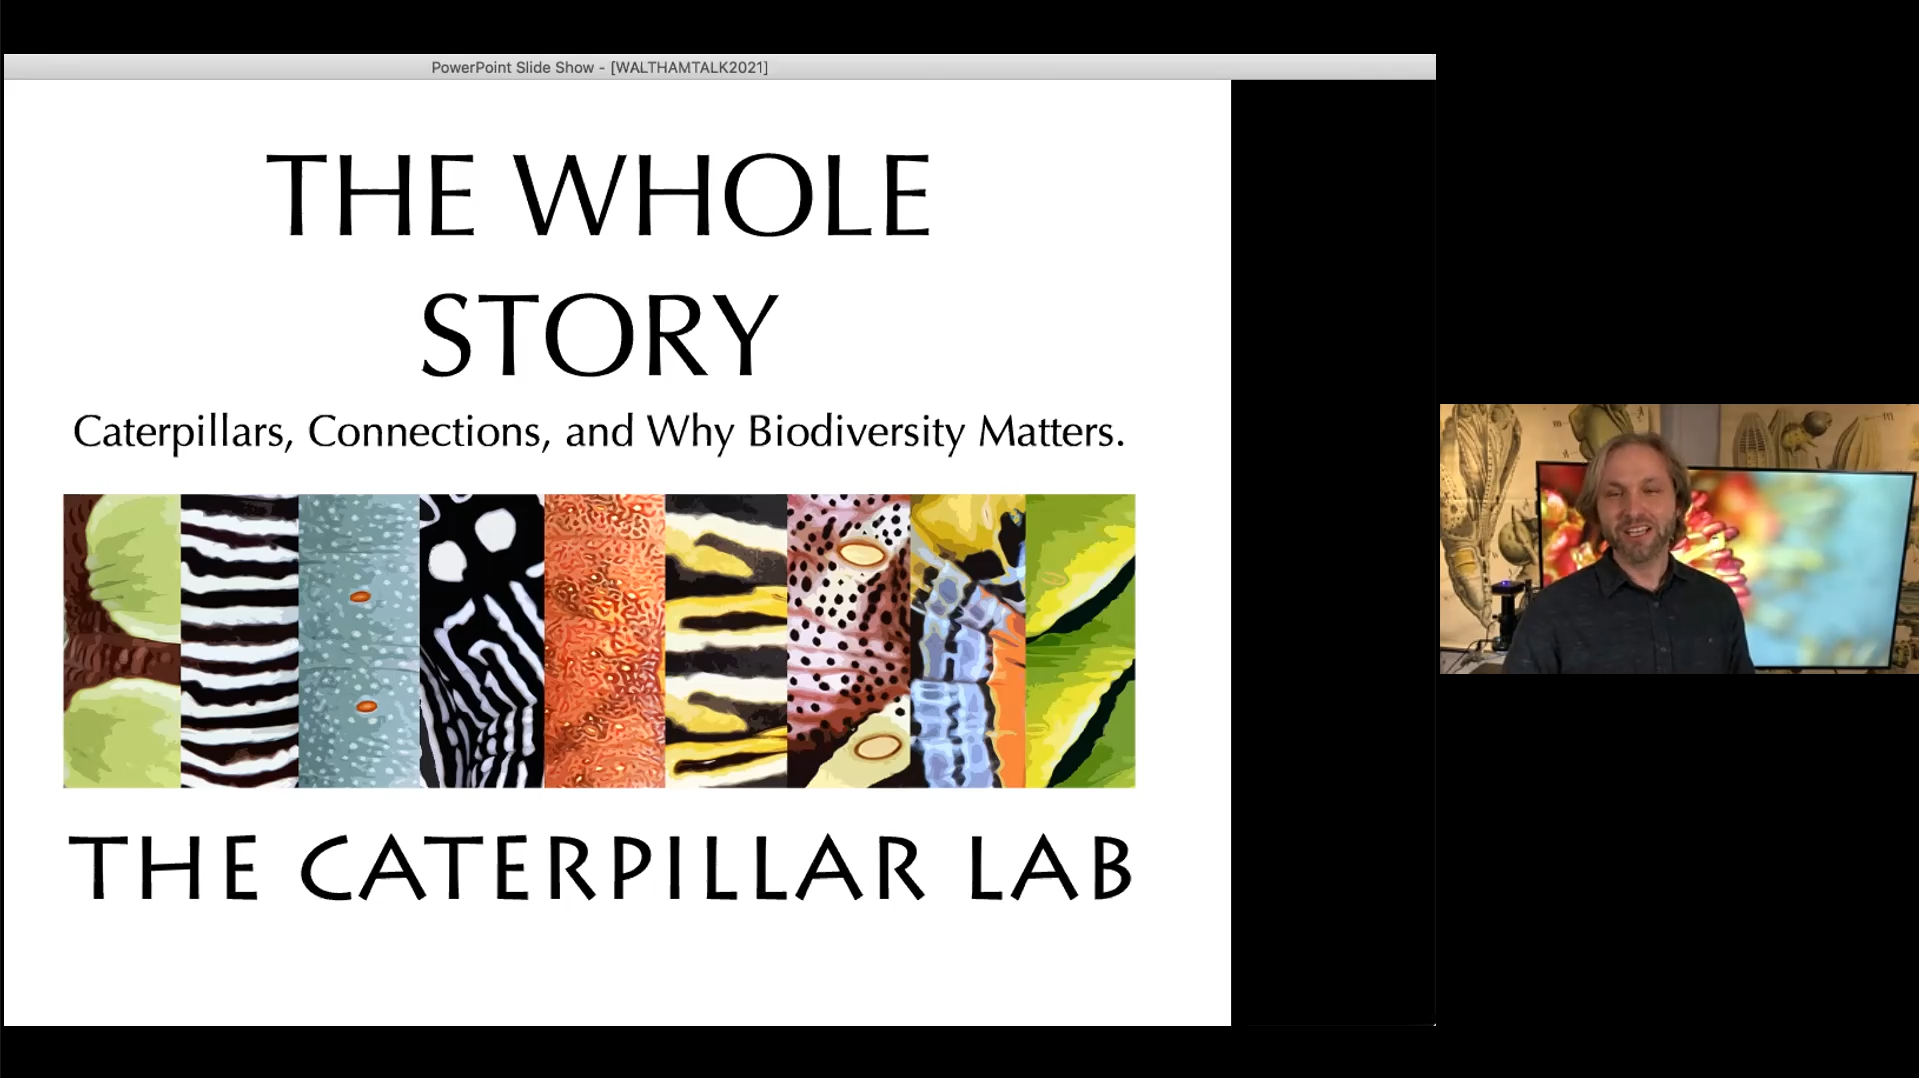 The Caterpillar Lab The Whole Story